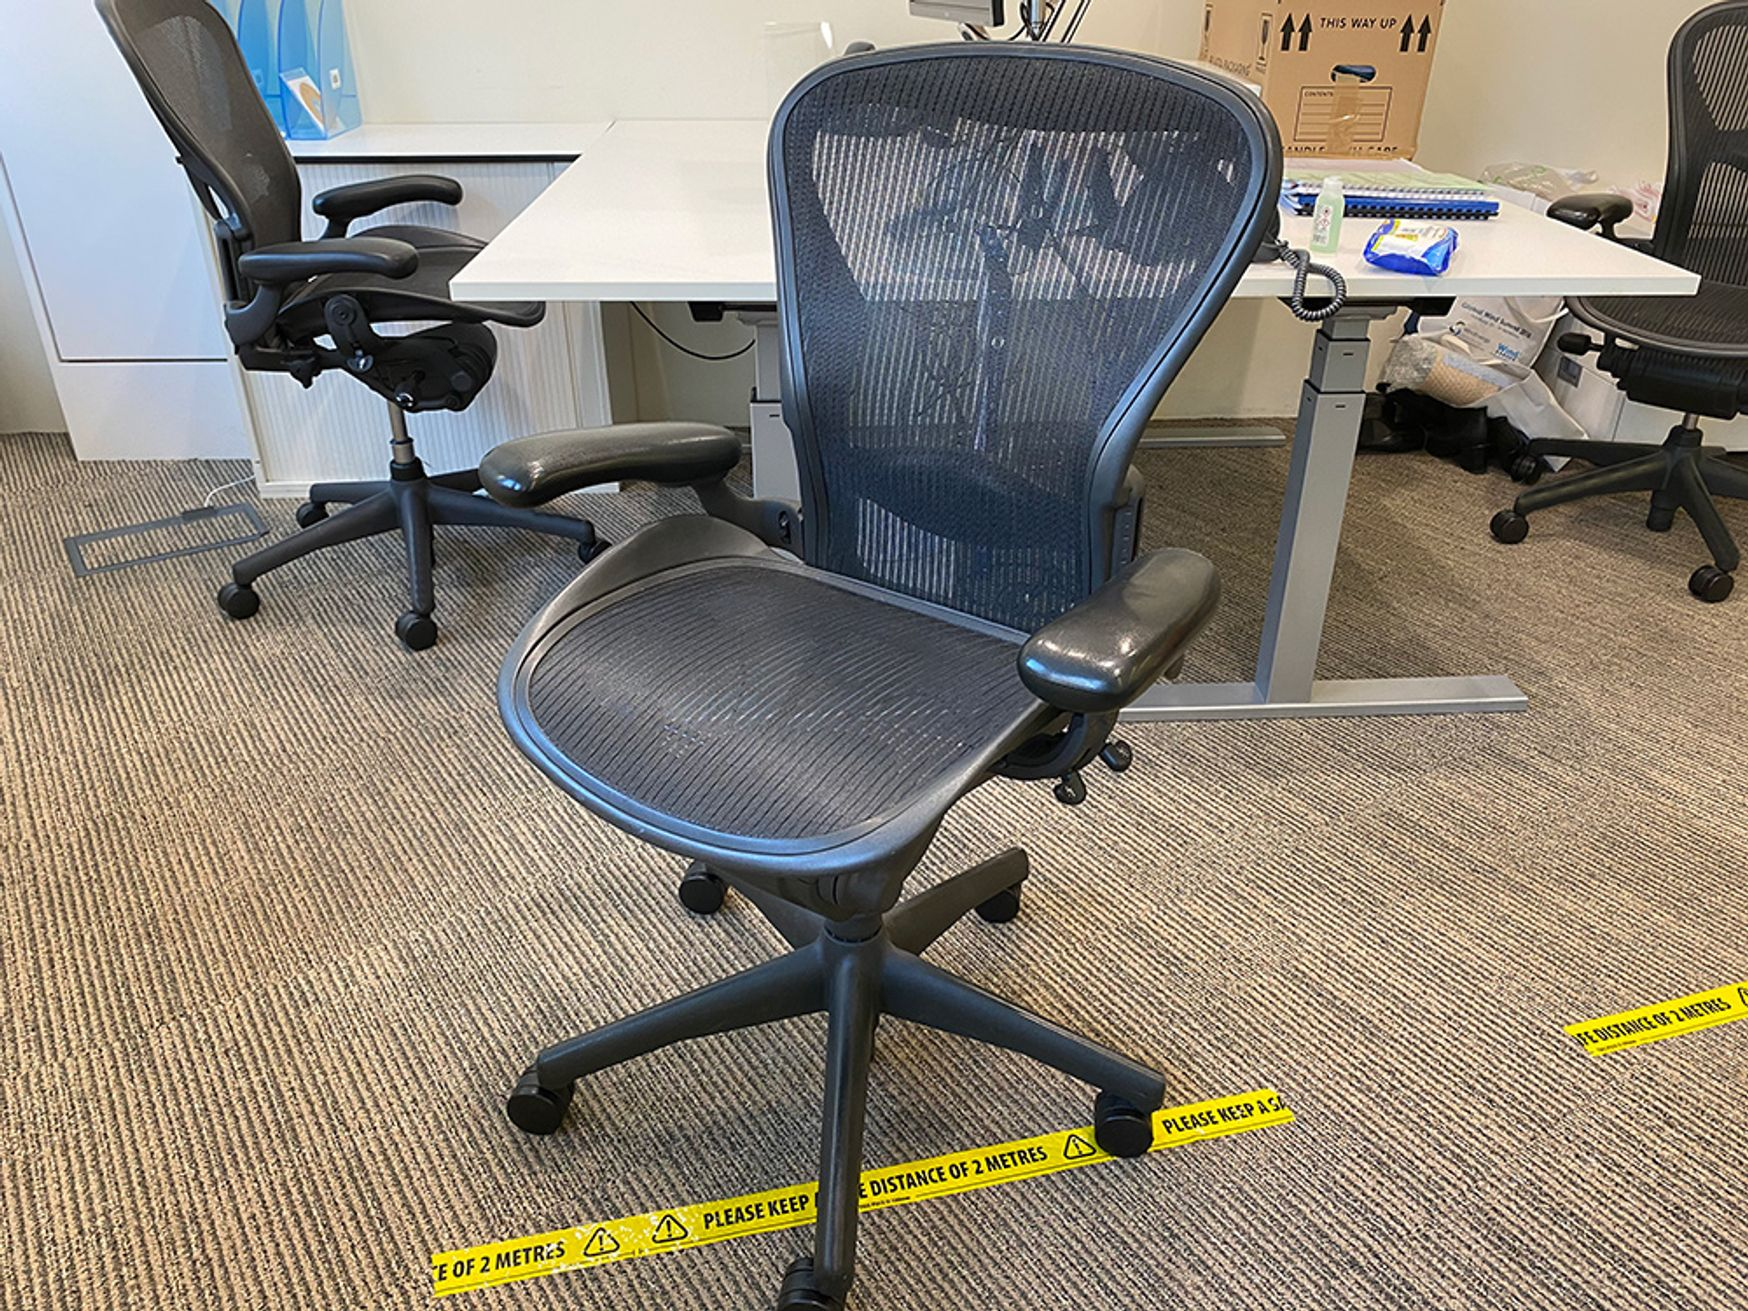 Oh yes, these iconic Aeron chairs are available now!